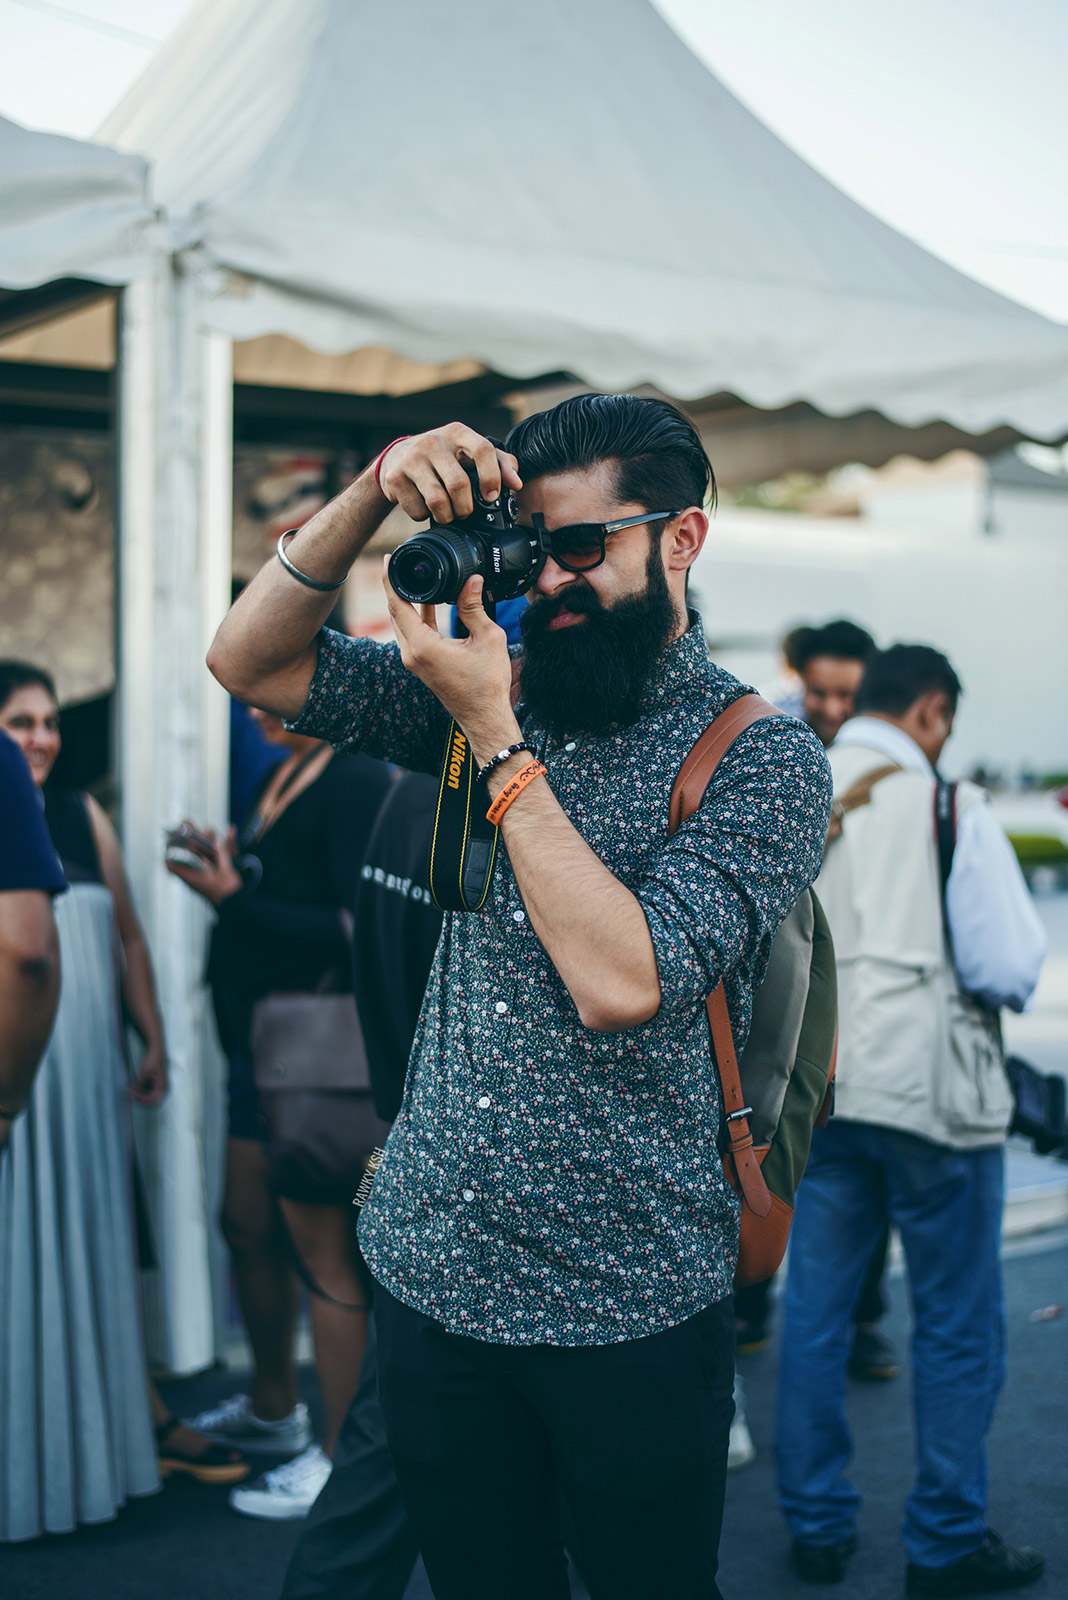 AIFW SS16 STREET STYLE DAY5 Photo by Rawky Ksh 2